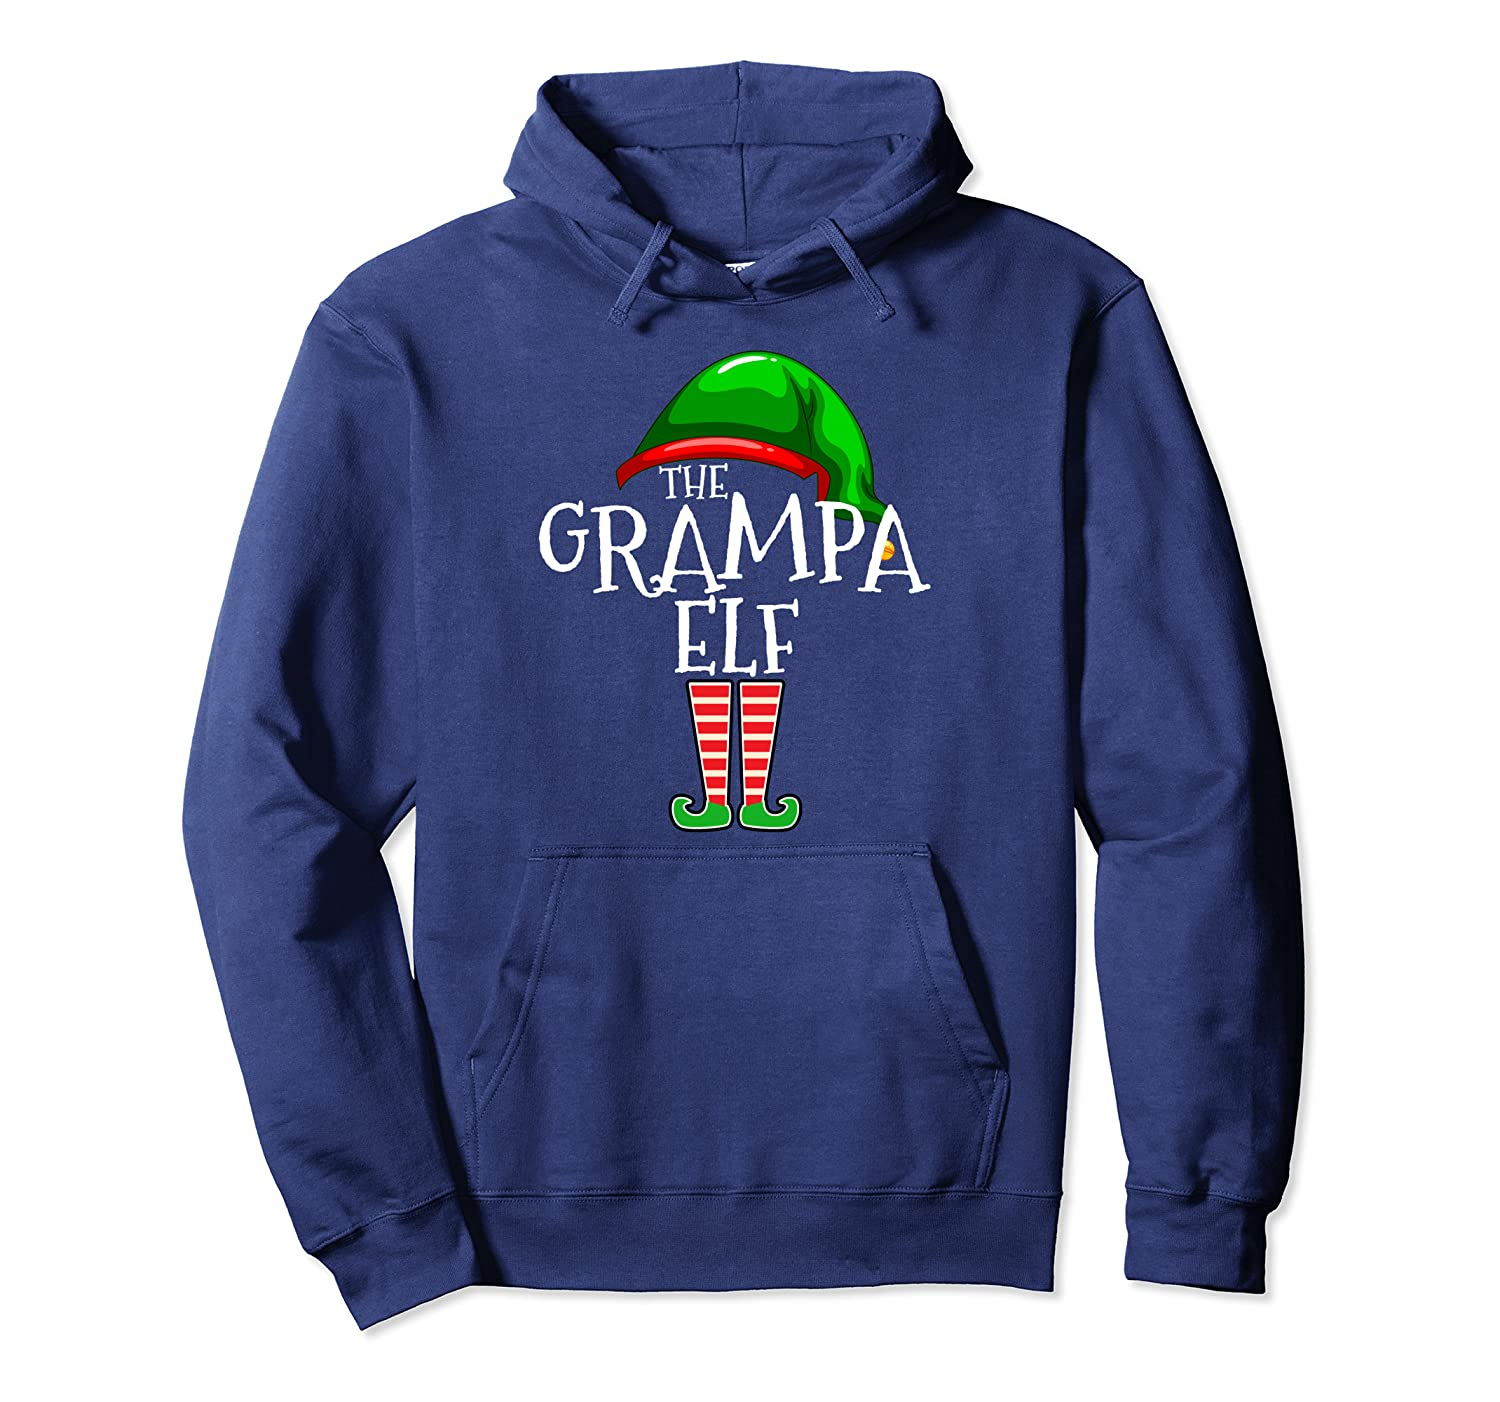 Grandpa Elf Group Matching Family Christmas Gift Couple Set Pullover Hoodie